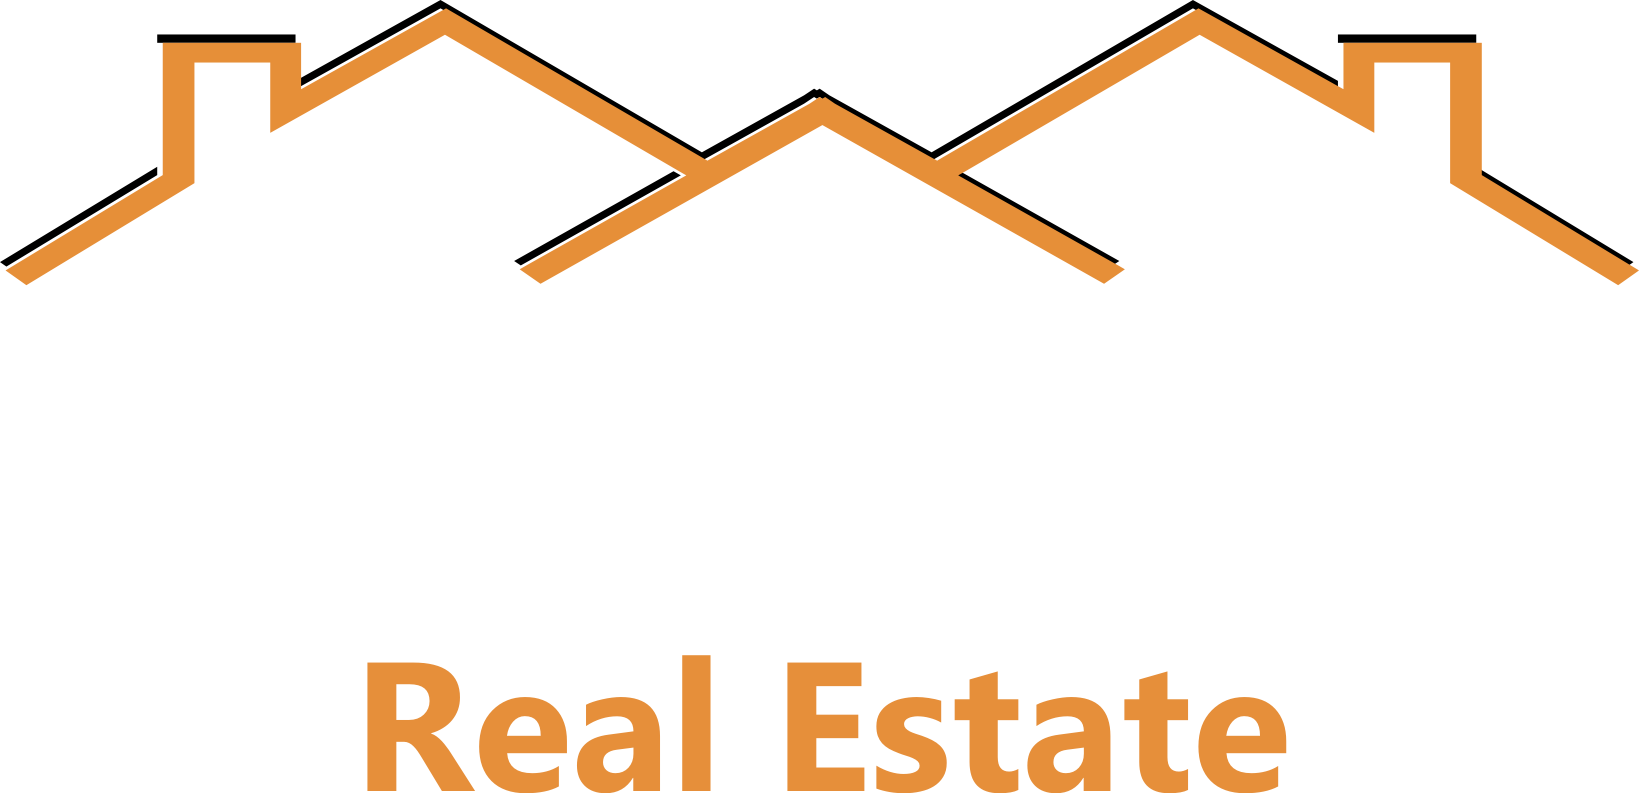 Boddington Real Estate -